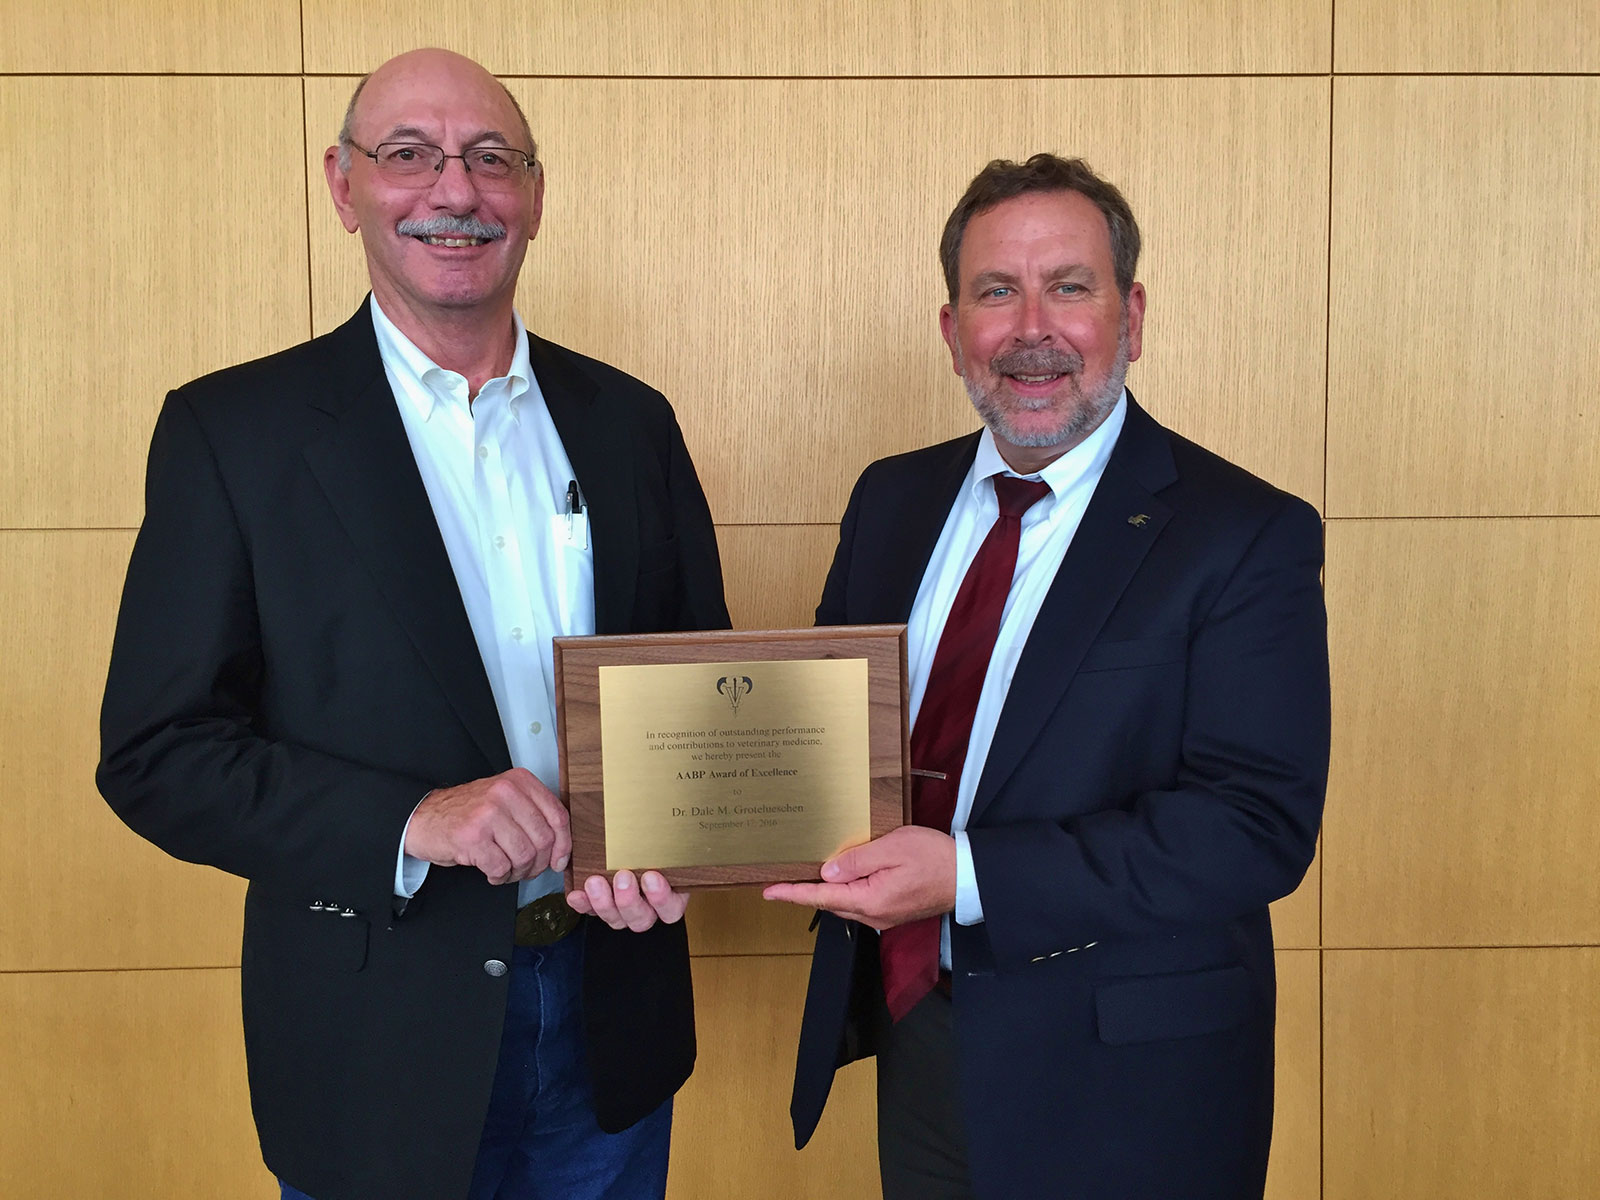 Dr. Dale Grotelueschen receives AABP Award of Excellence from Dr. David Smith.